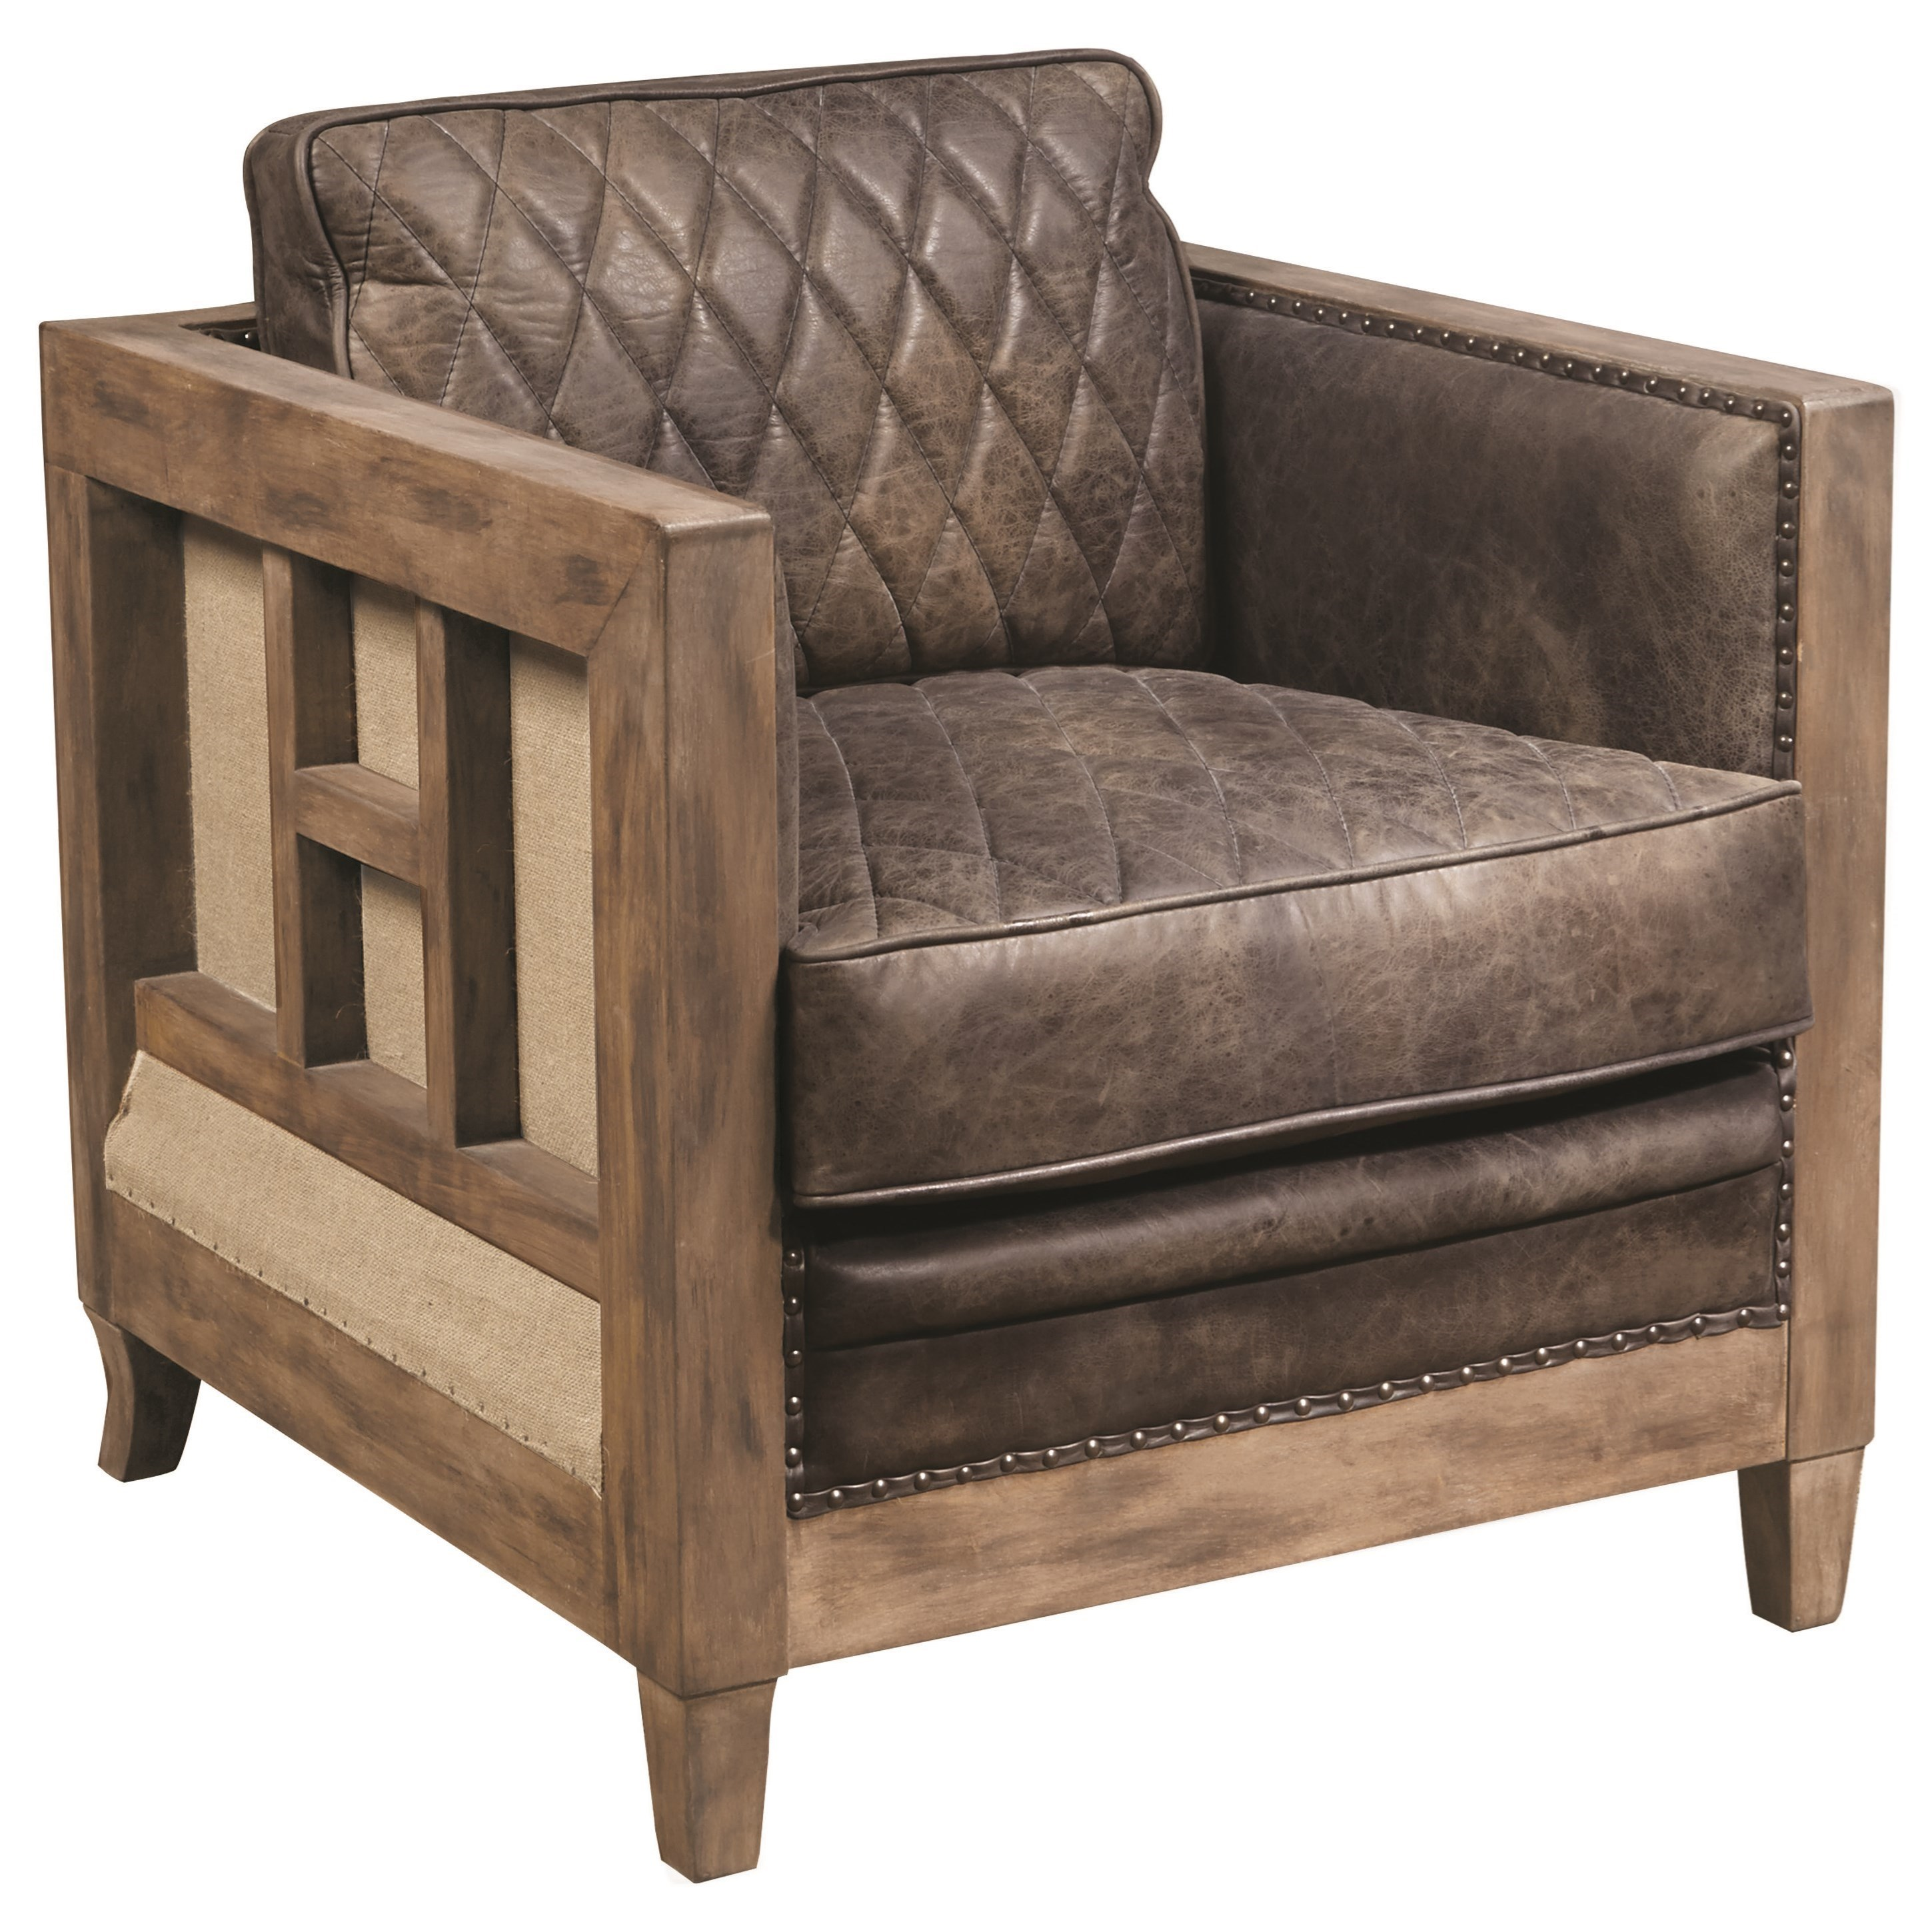 Pulaski Furniture Accent Chairs Slater Chair